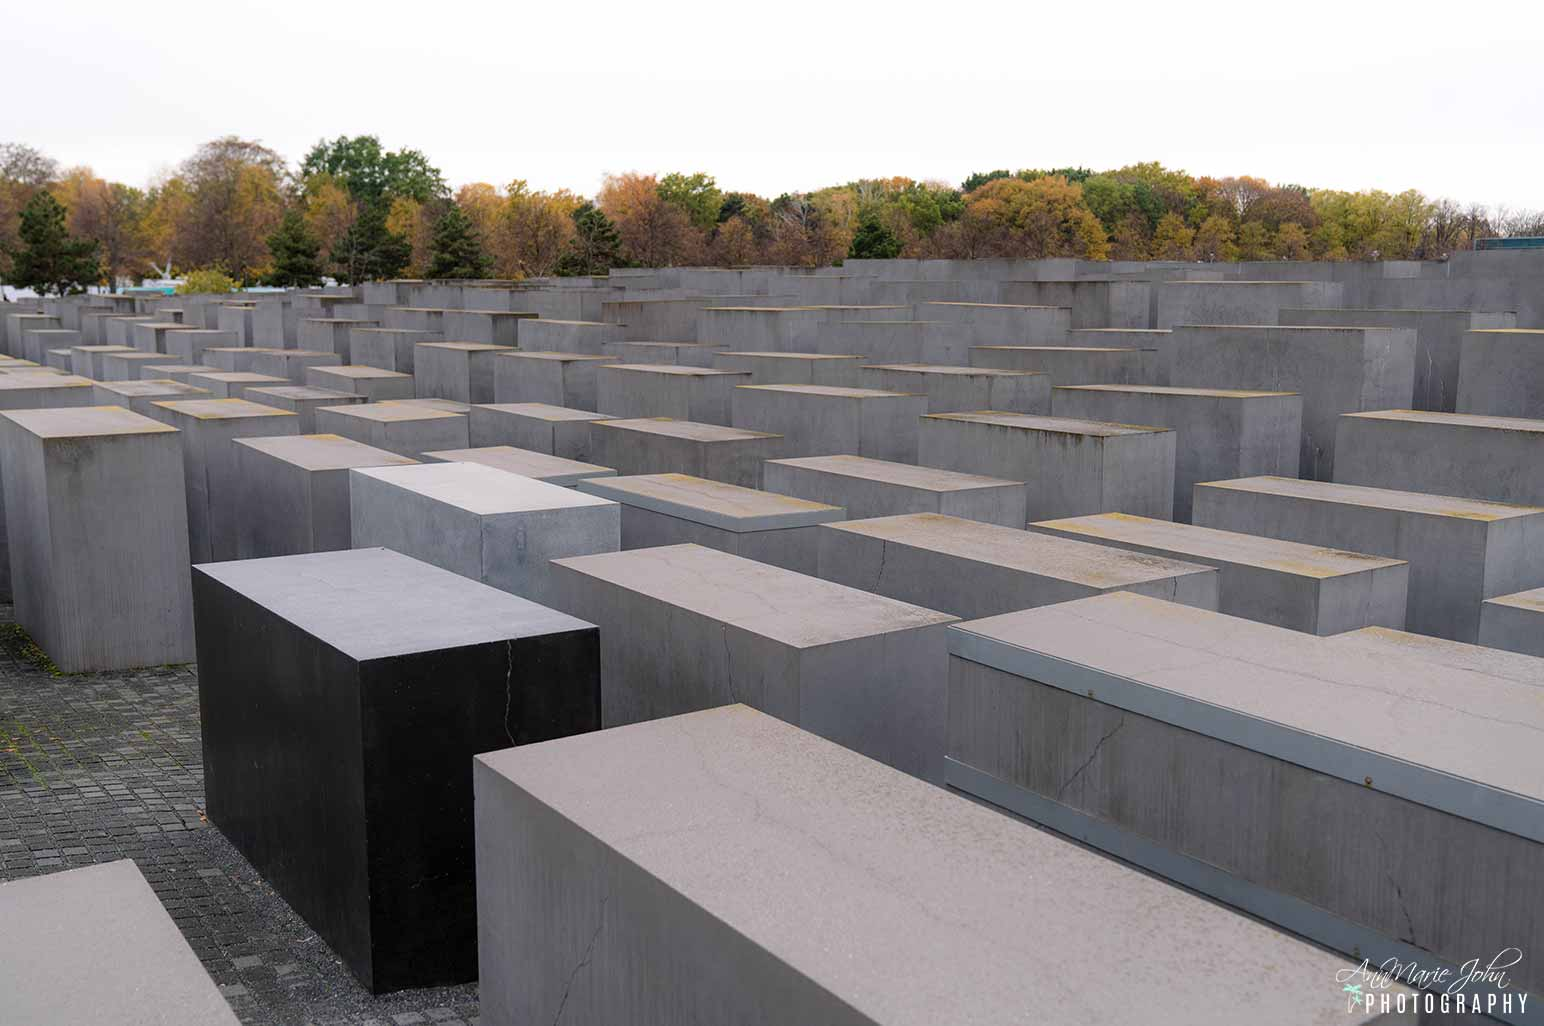 Cheap and free things to do in Berlin. Holocaust Memorial